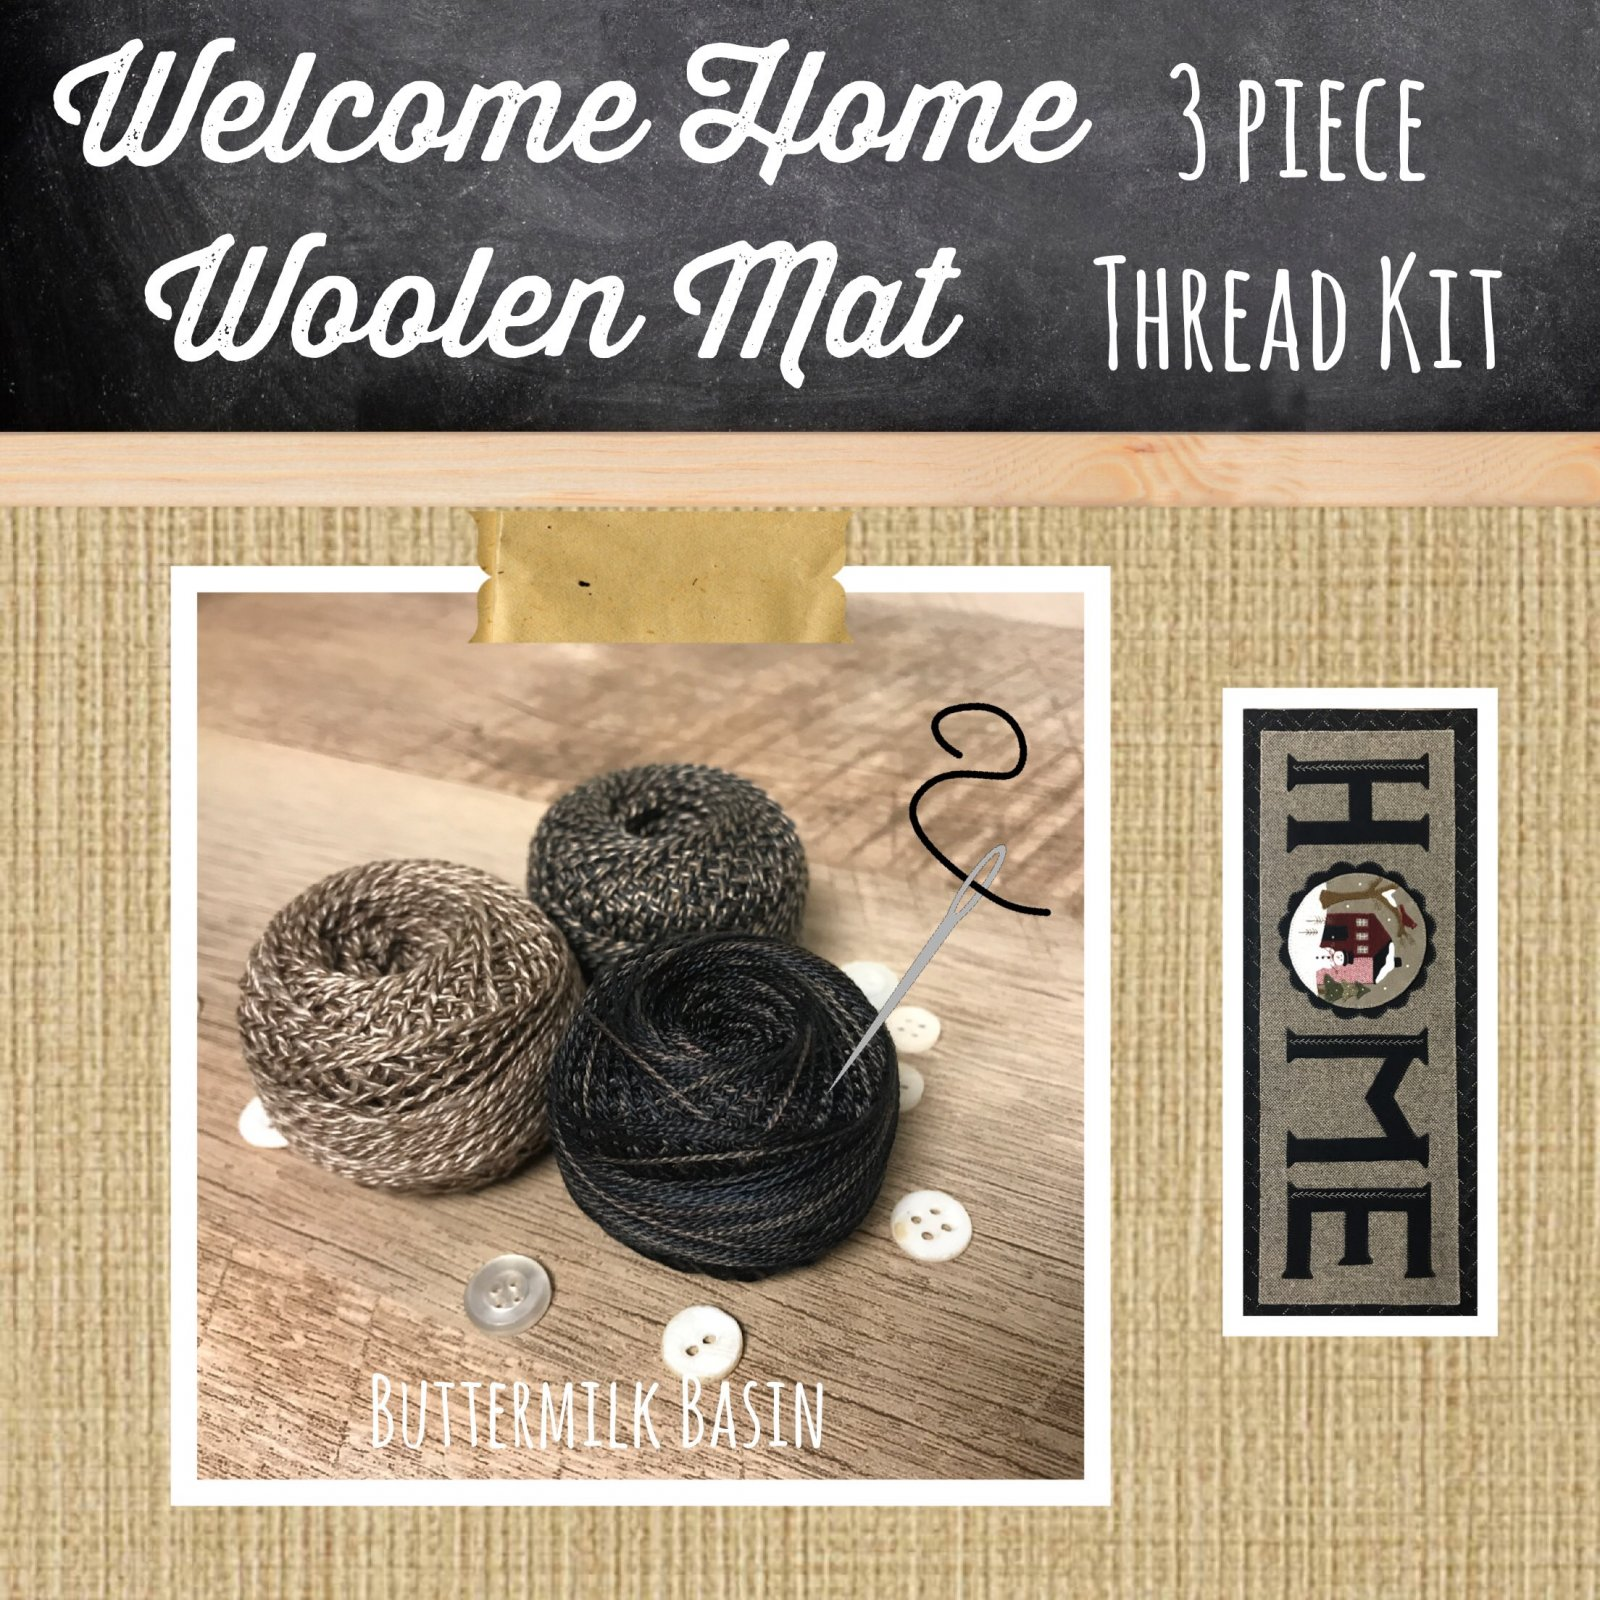 Welcome HOME Base 3 Piece Thread Kit